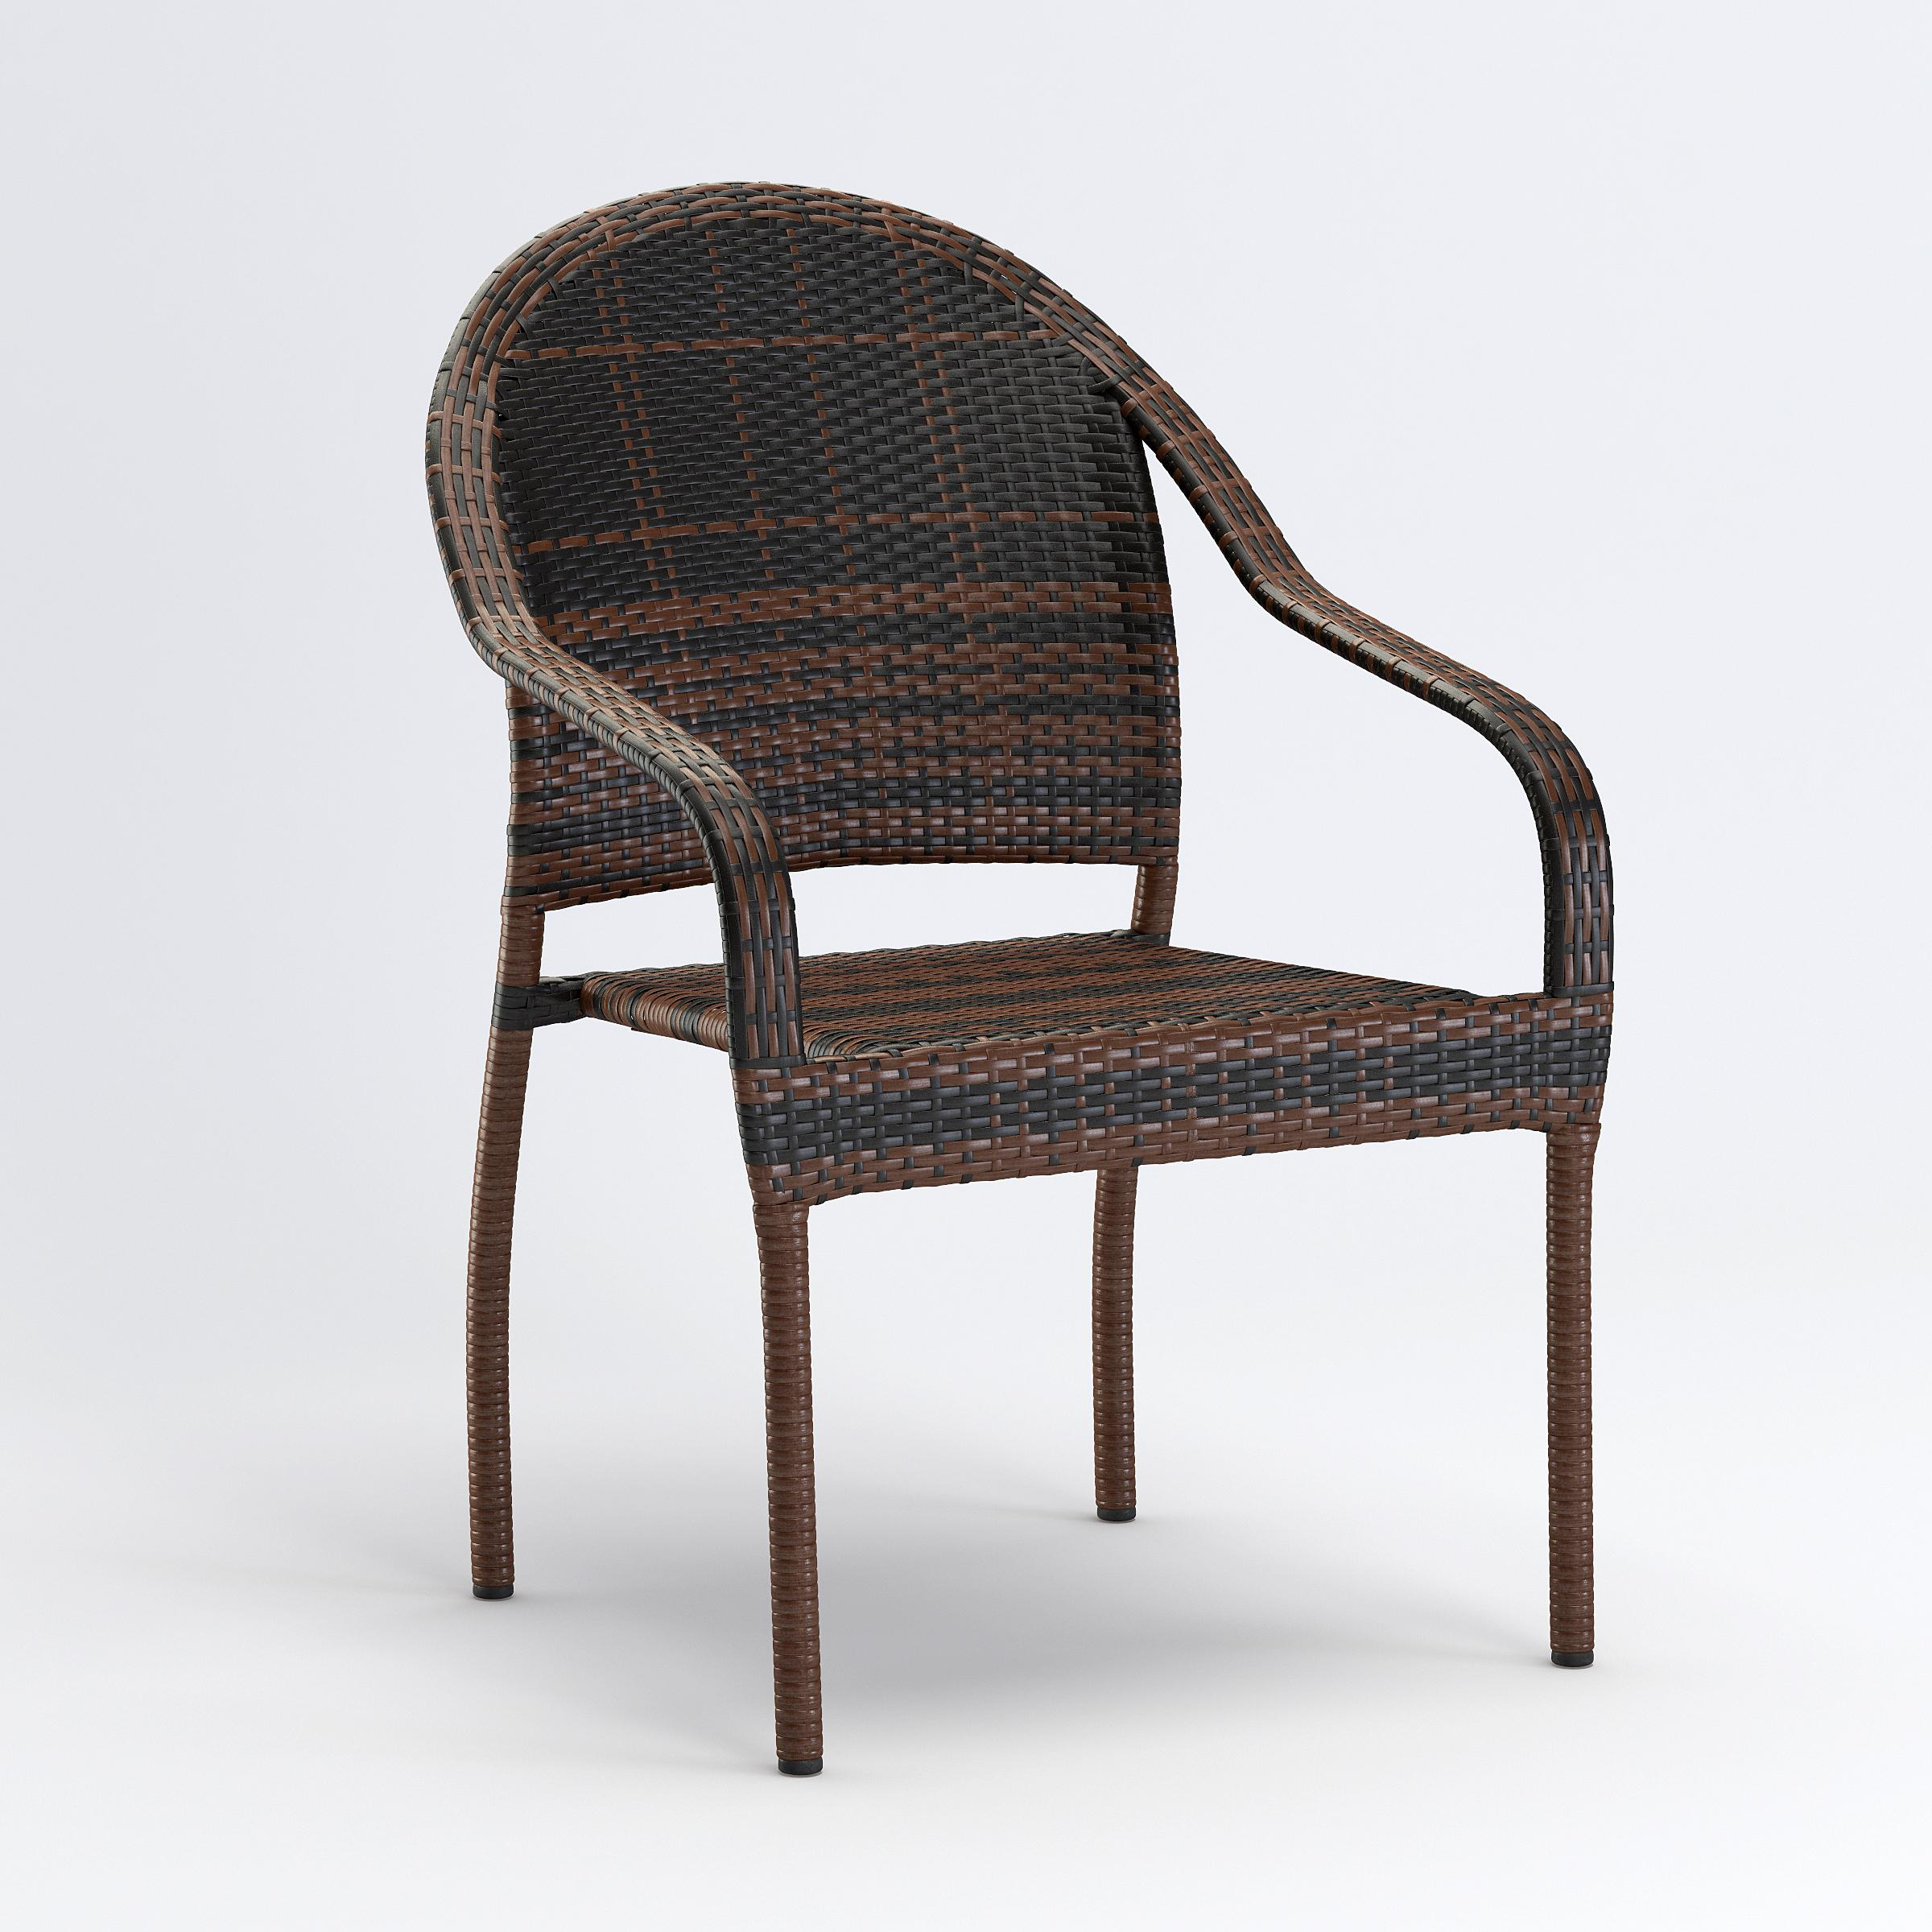 3D rendering of wicker furniture products